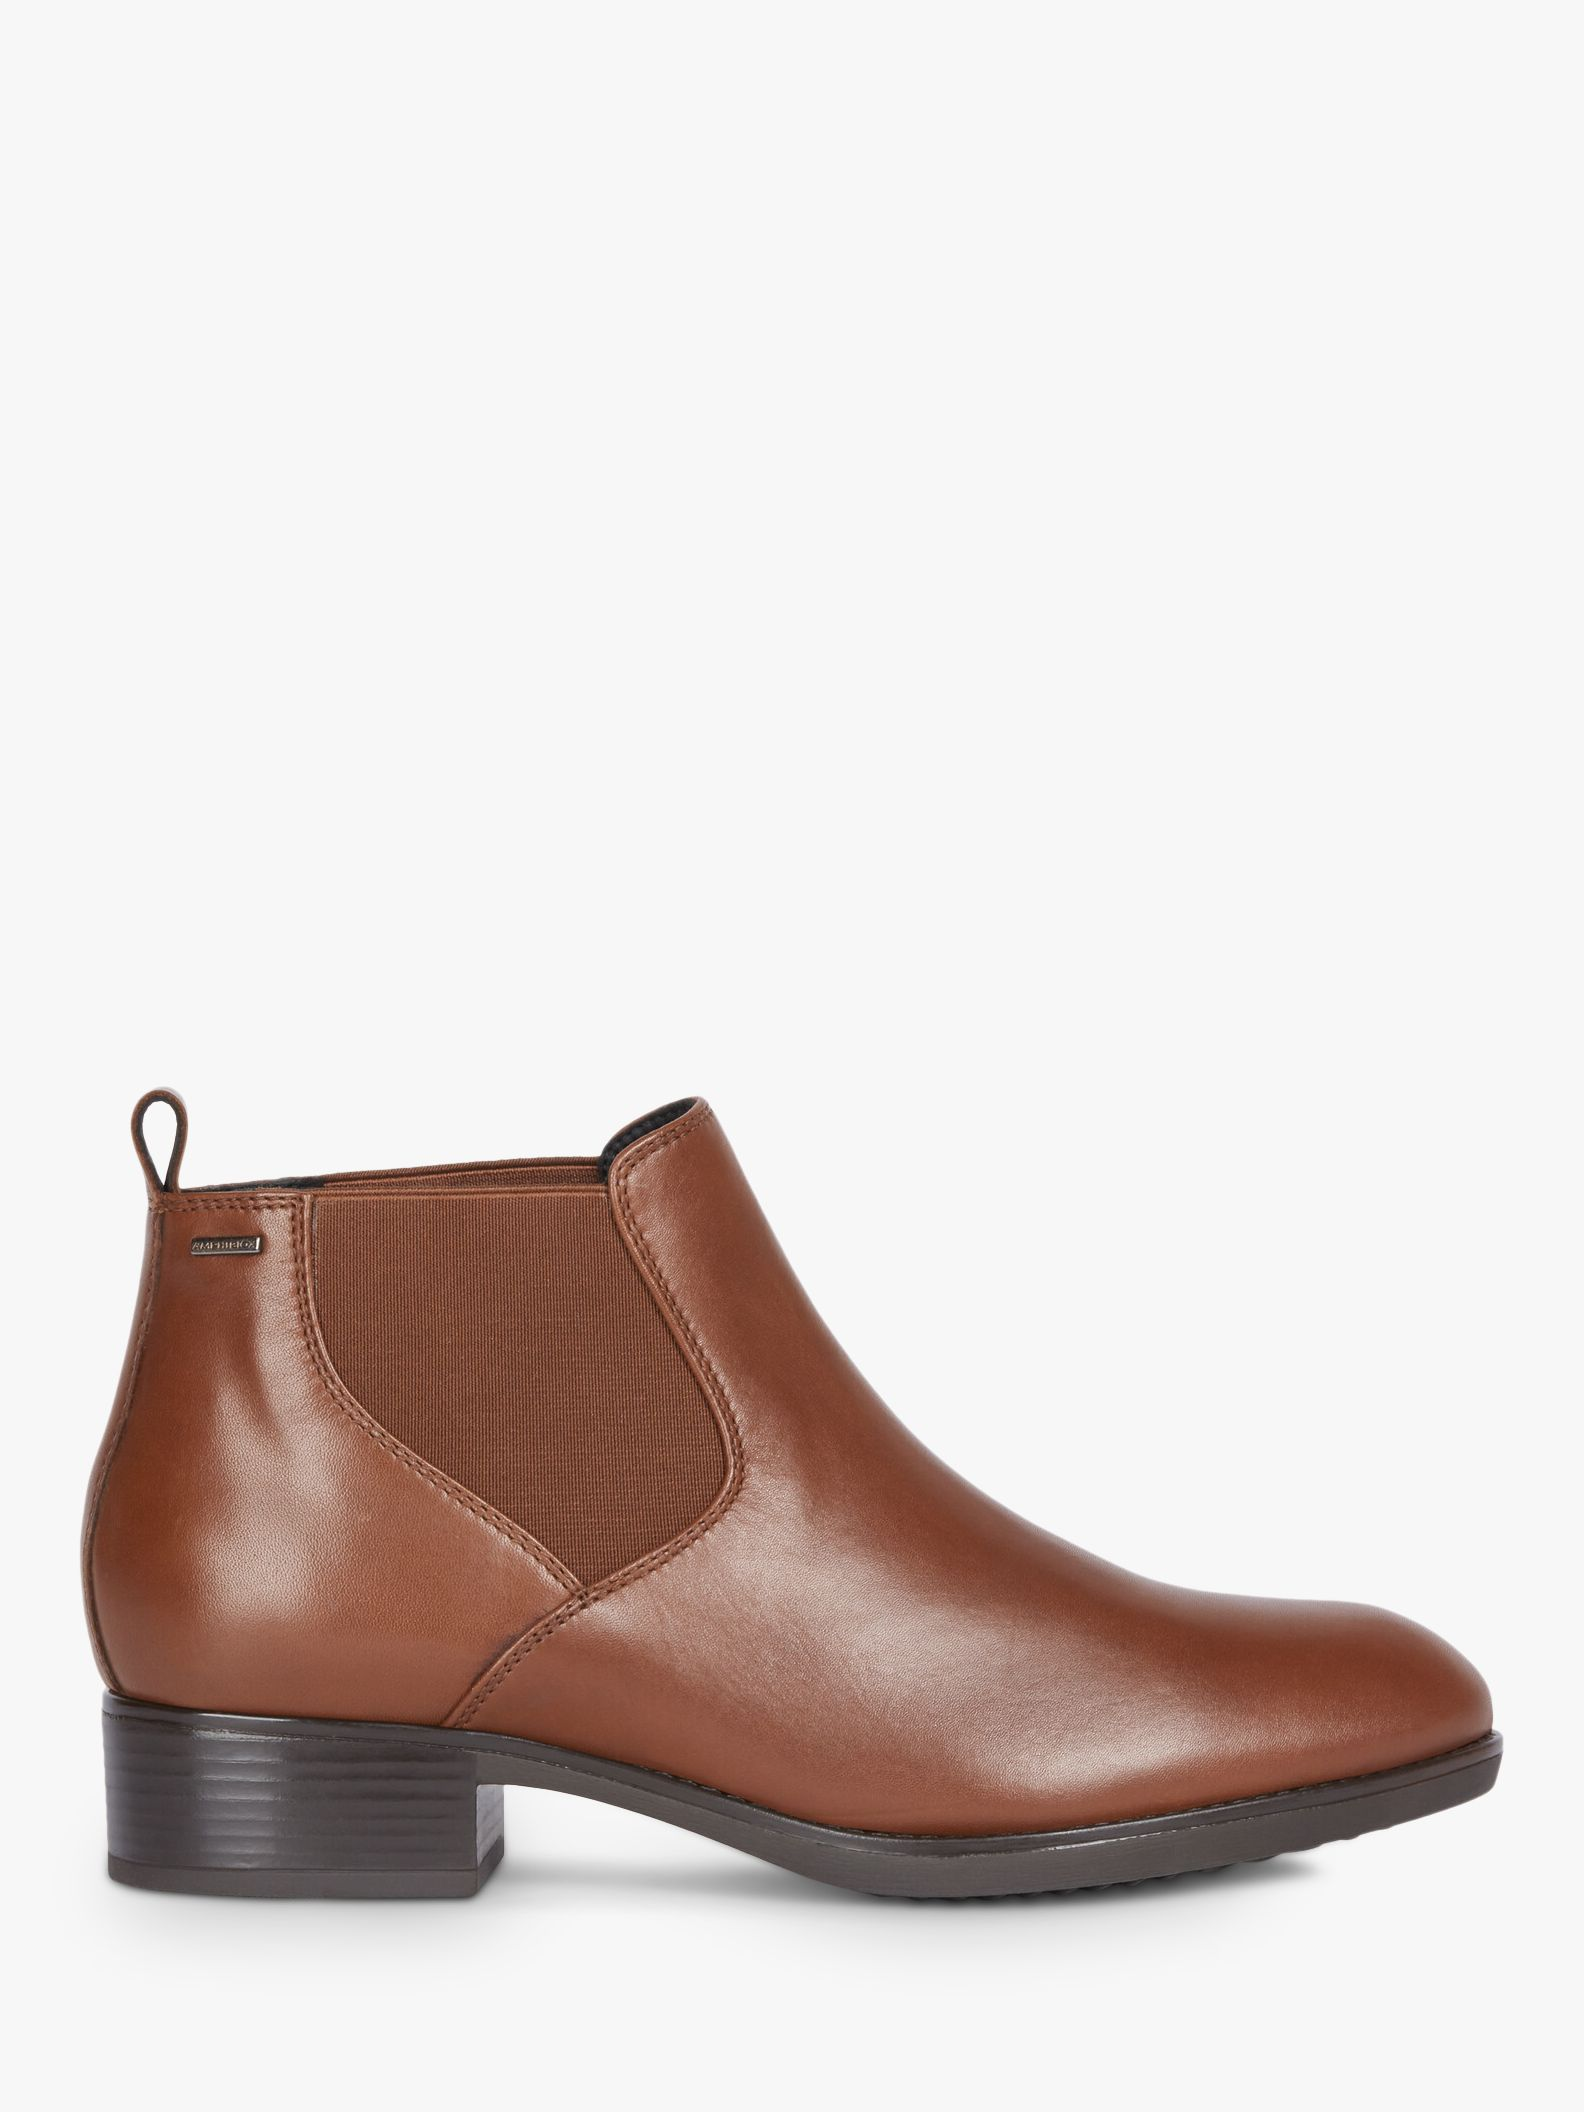 Geox Geox Women's Felicity Leather Chelsea Boots, Brown